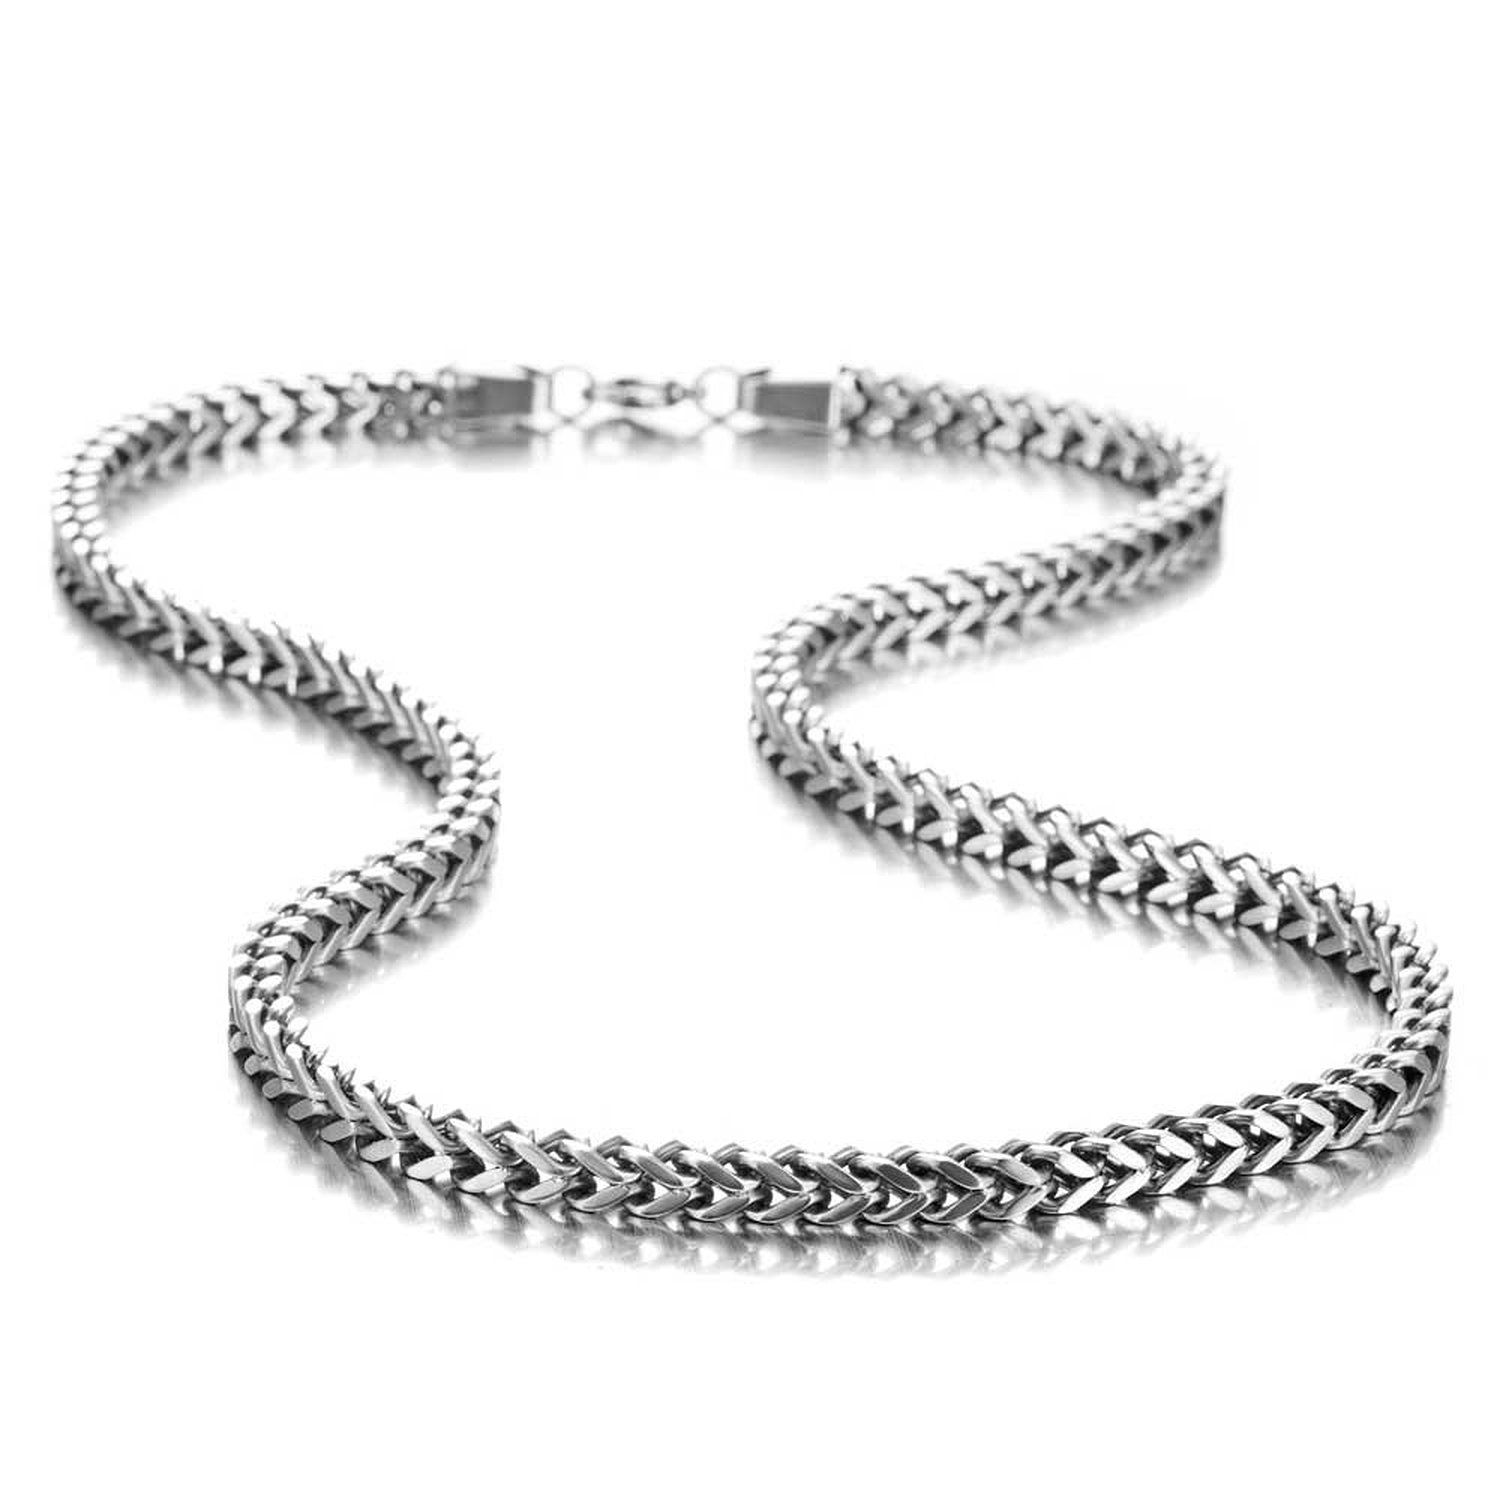 chains chain sterling ecuatwitt ball beaded supplies gallery of satellite jewelry wholesale plated htm bulk silver gold